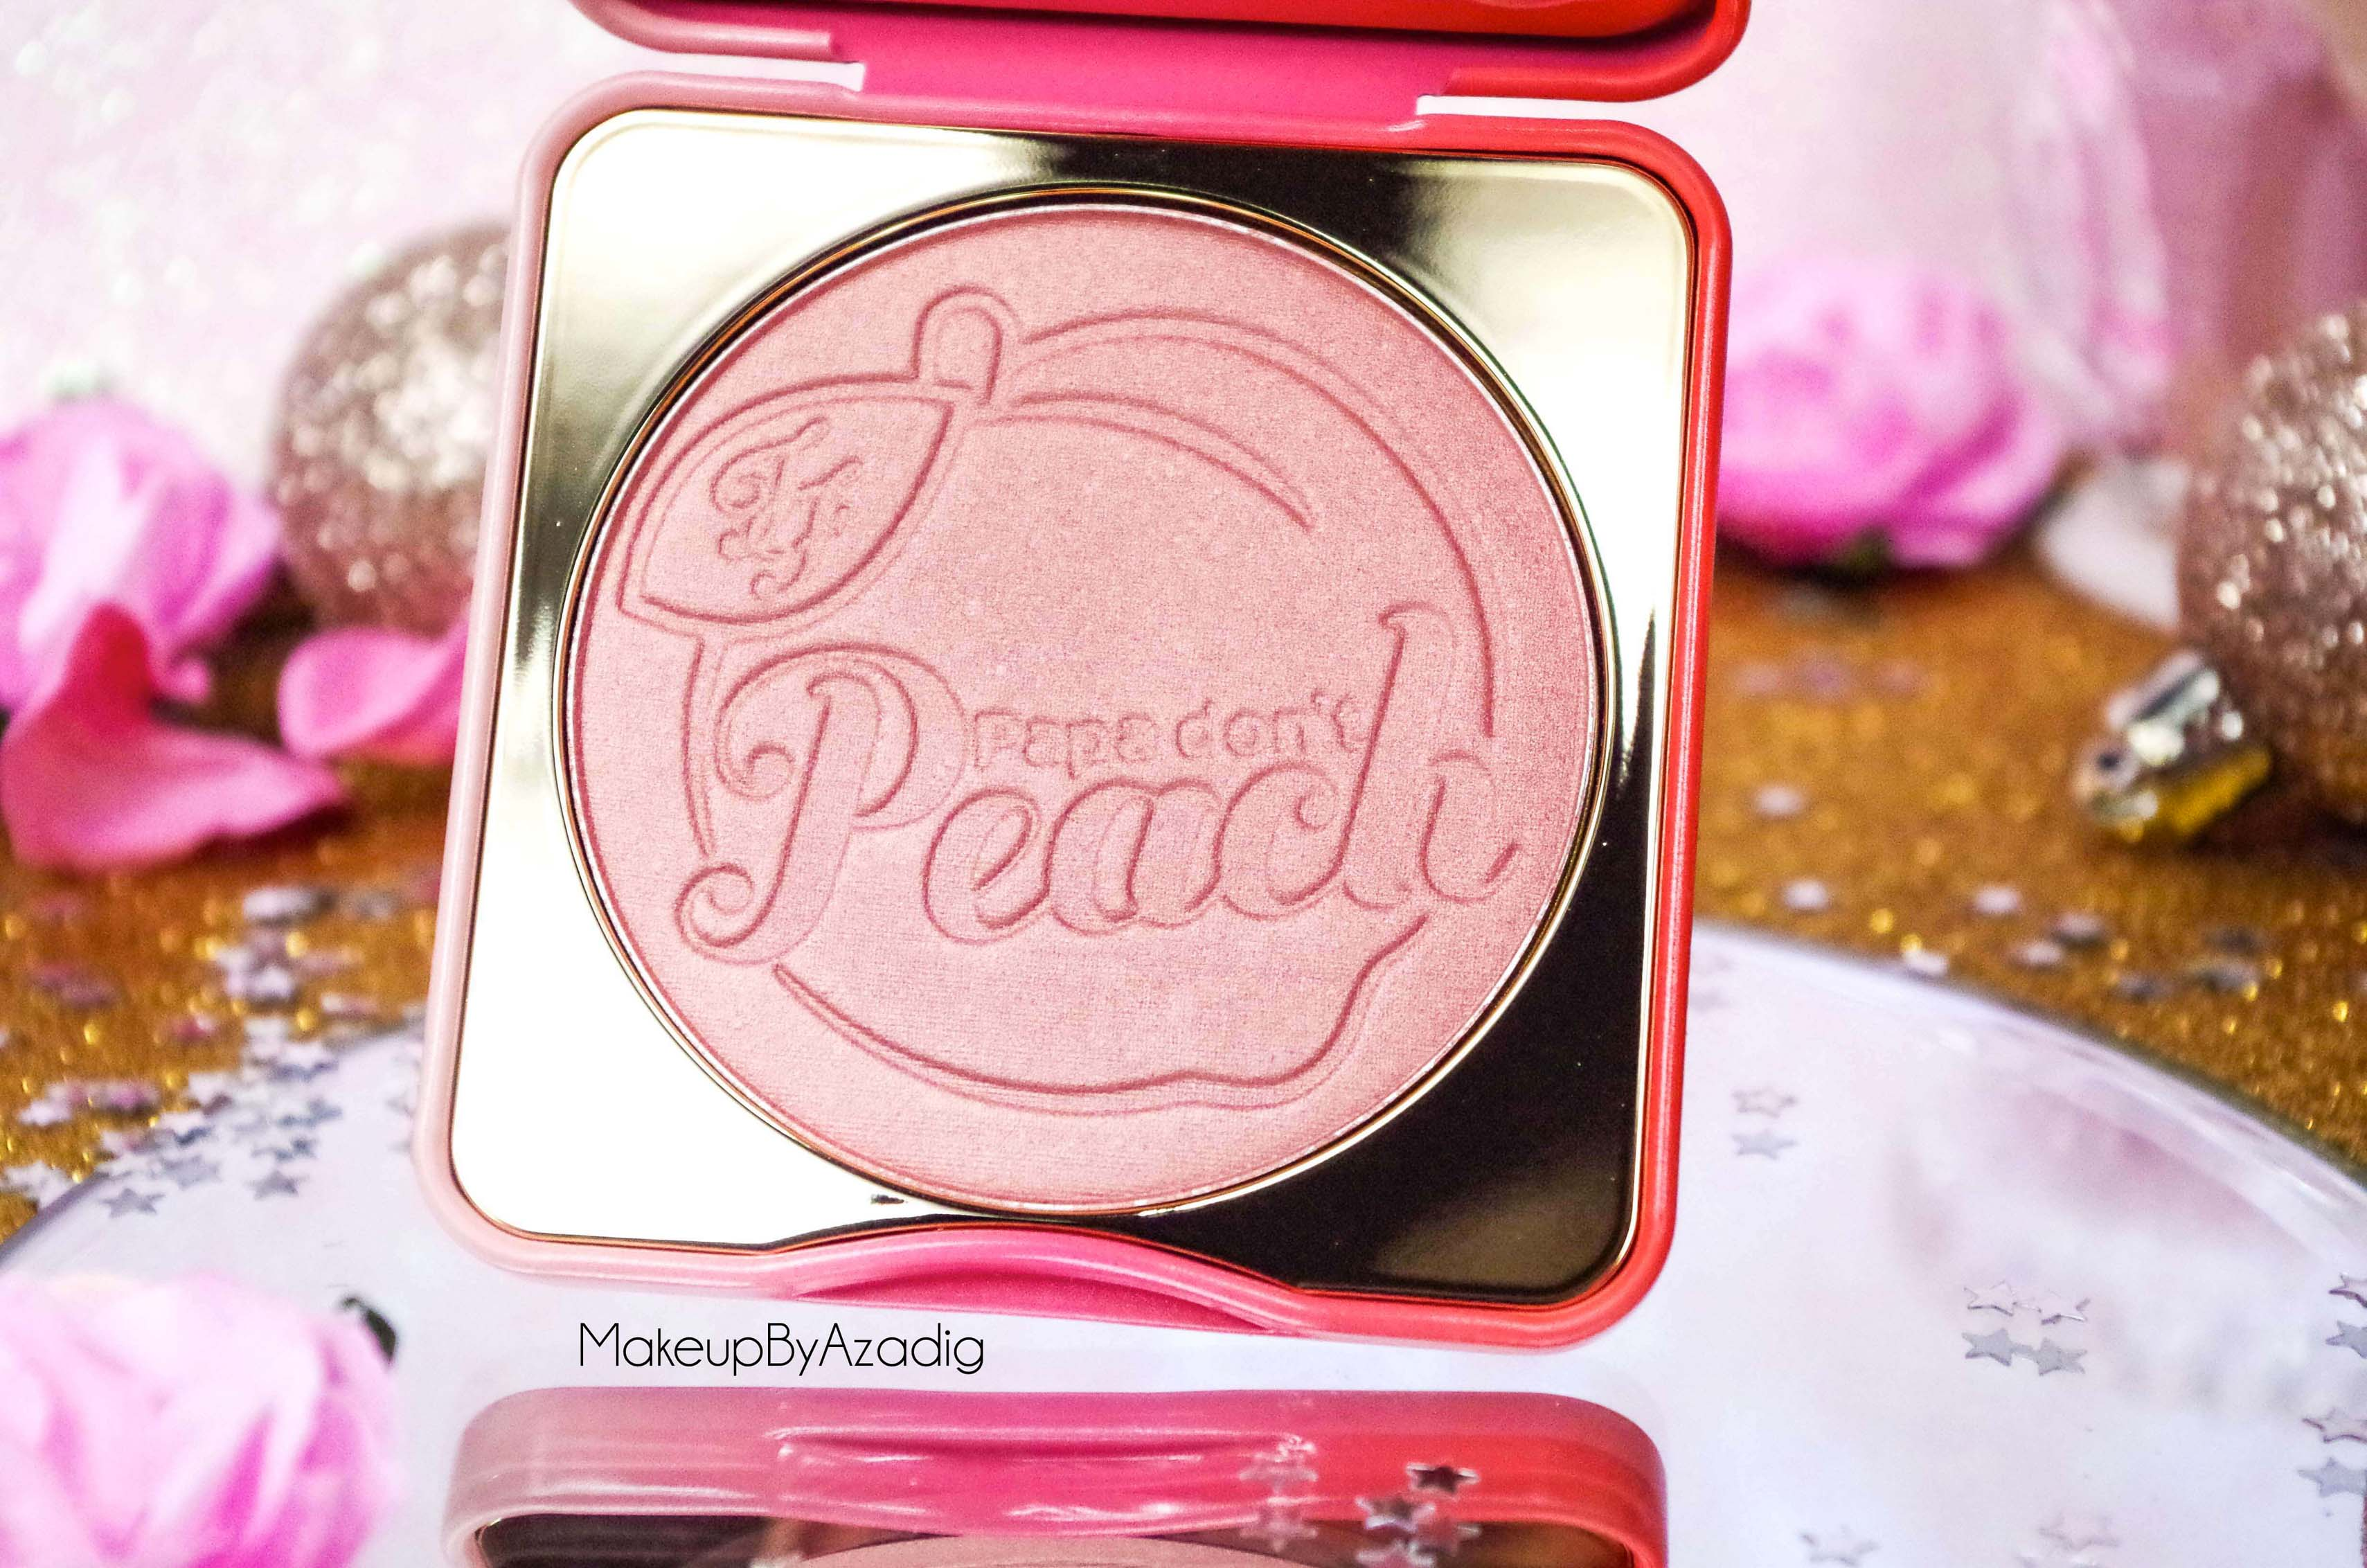 review-nouveau-blush-papa-dont-peach-too-faced-sephora-ete-printemps-paris-sweet-peach-swatch-avis-makeupbyazadig-jerome-2